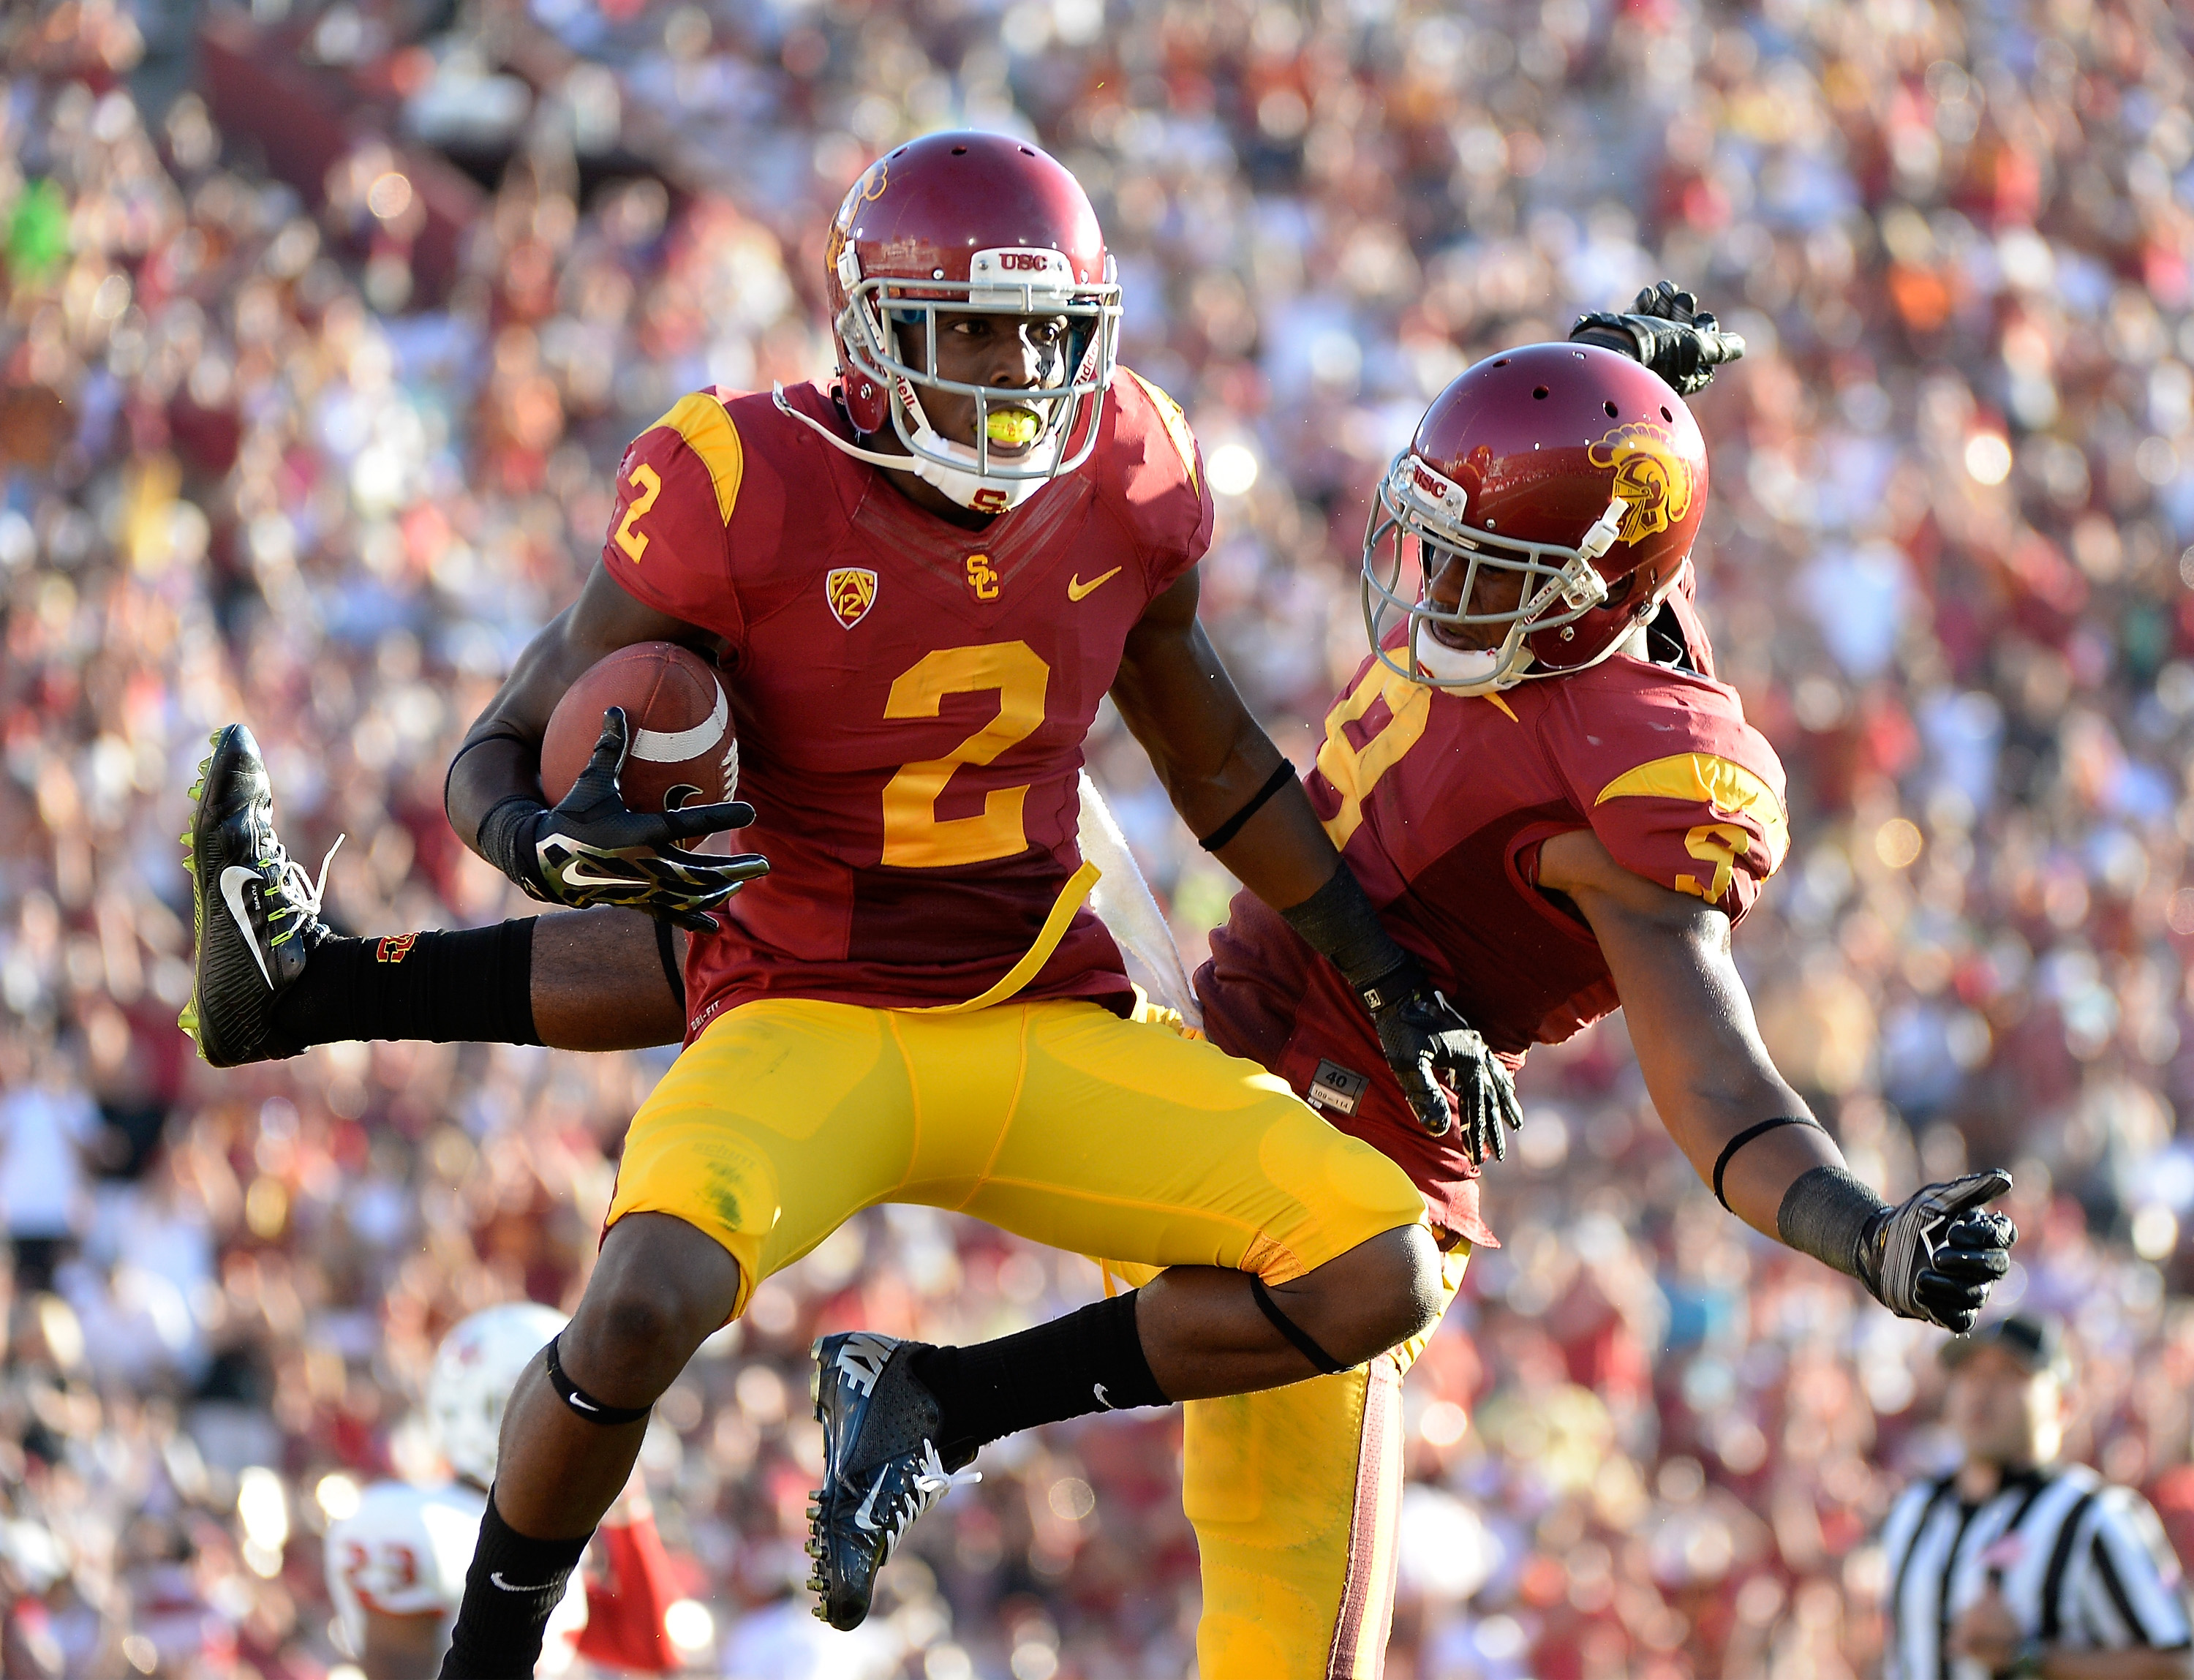 Jackson will start at corner this season, and will also be the team's primary kick returner (Getty).